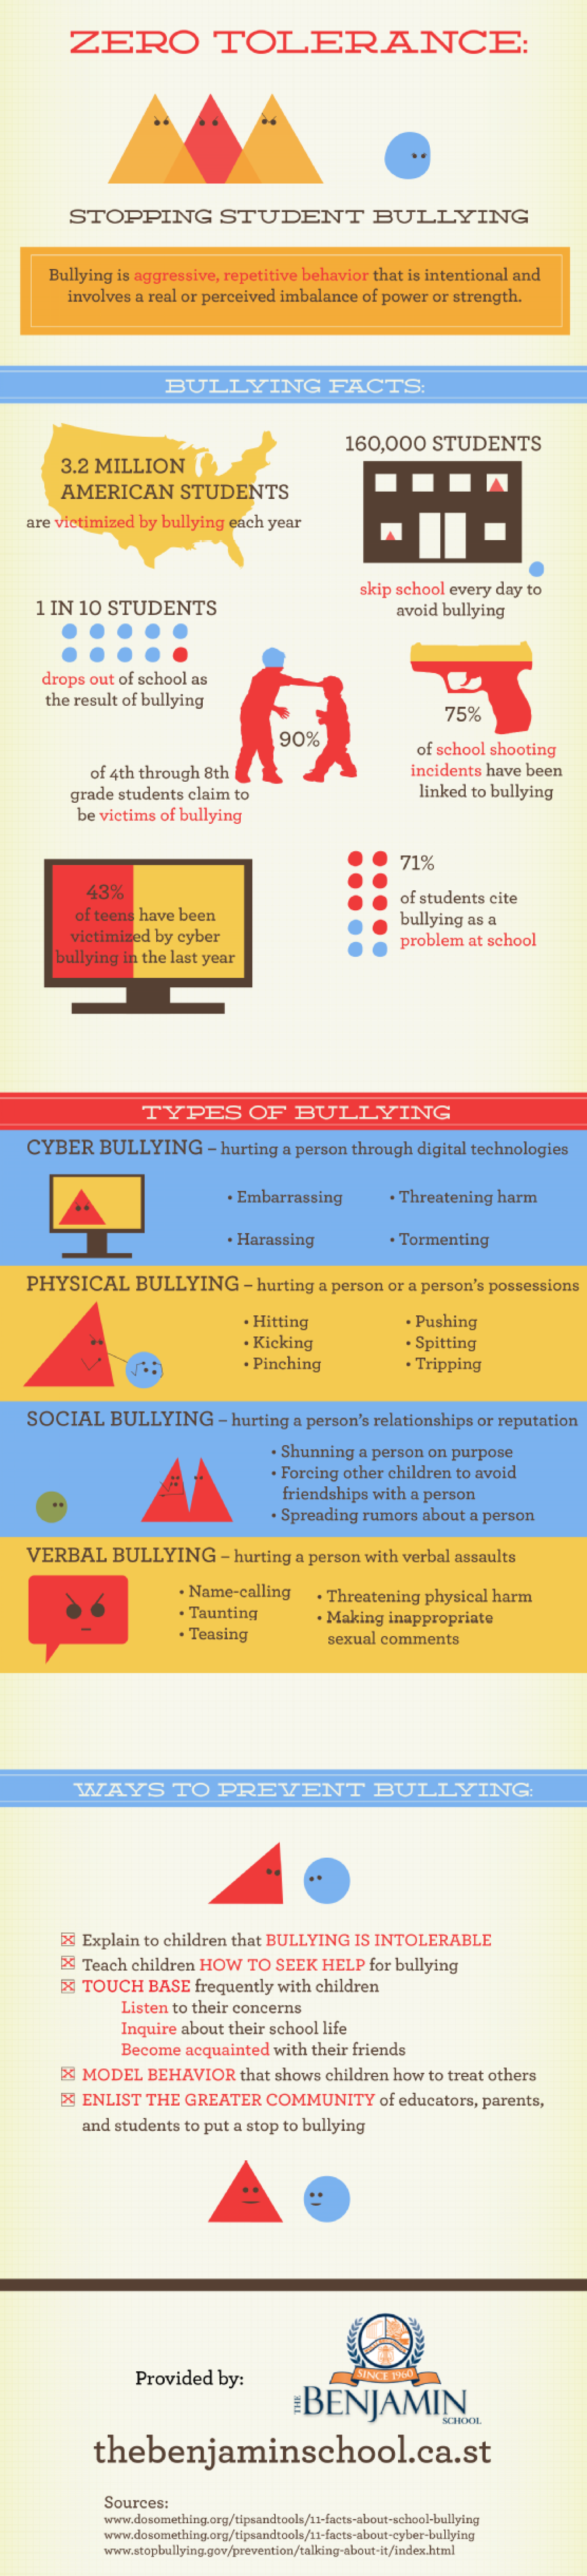 Zero Tolerance: Stopping Student Bullying Infographic